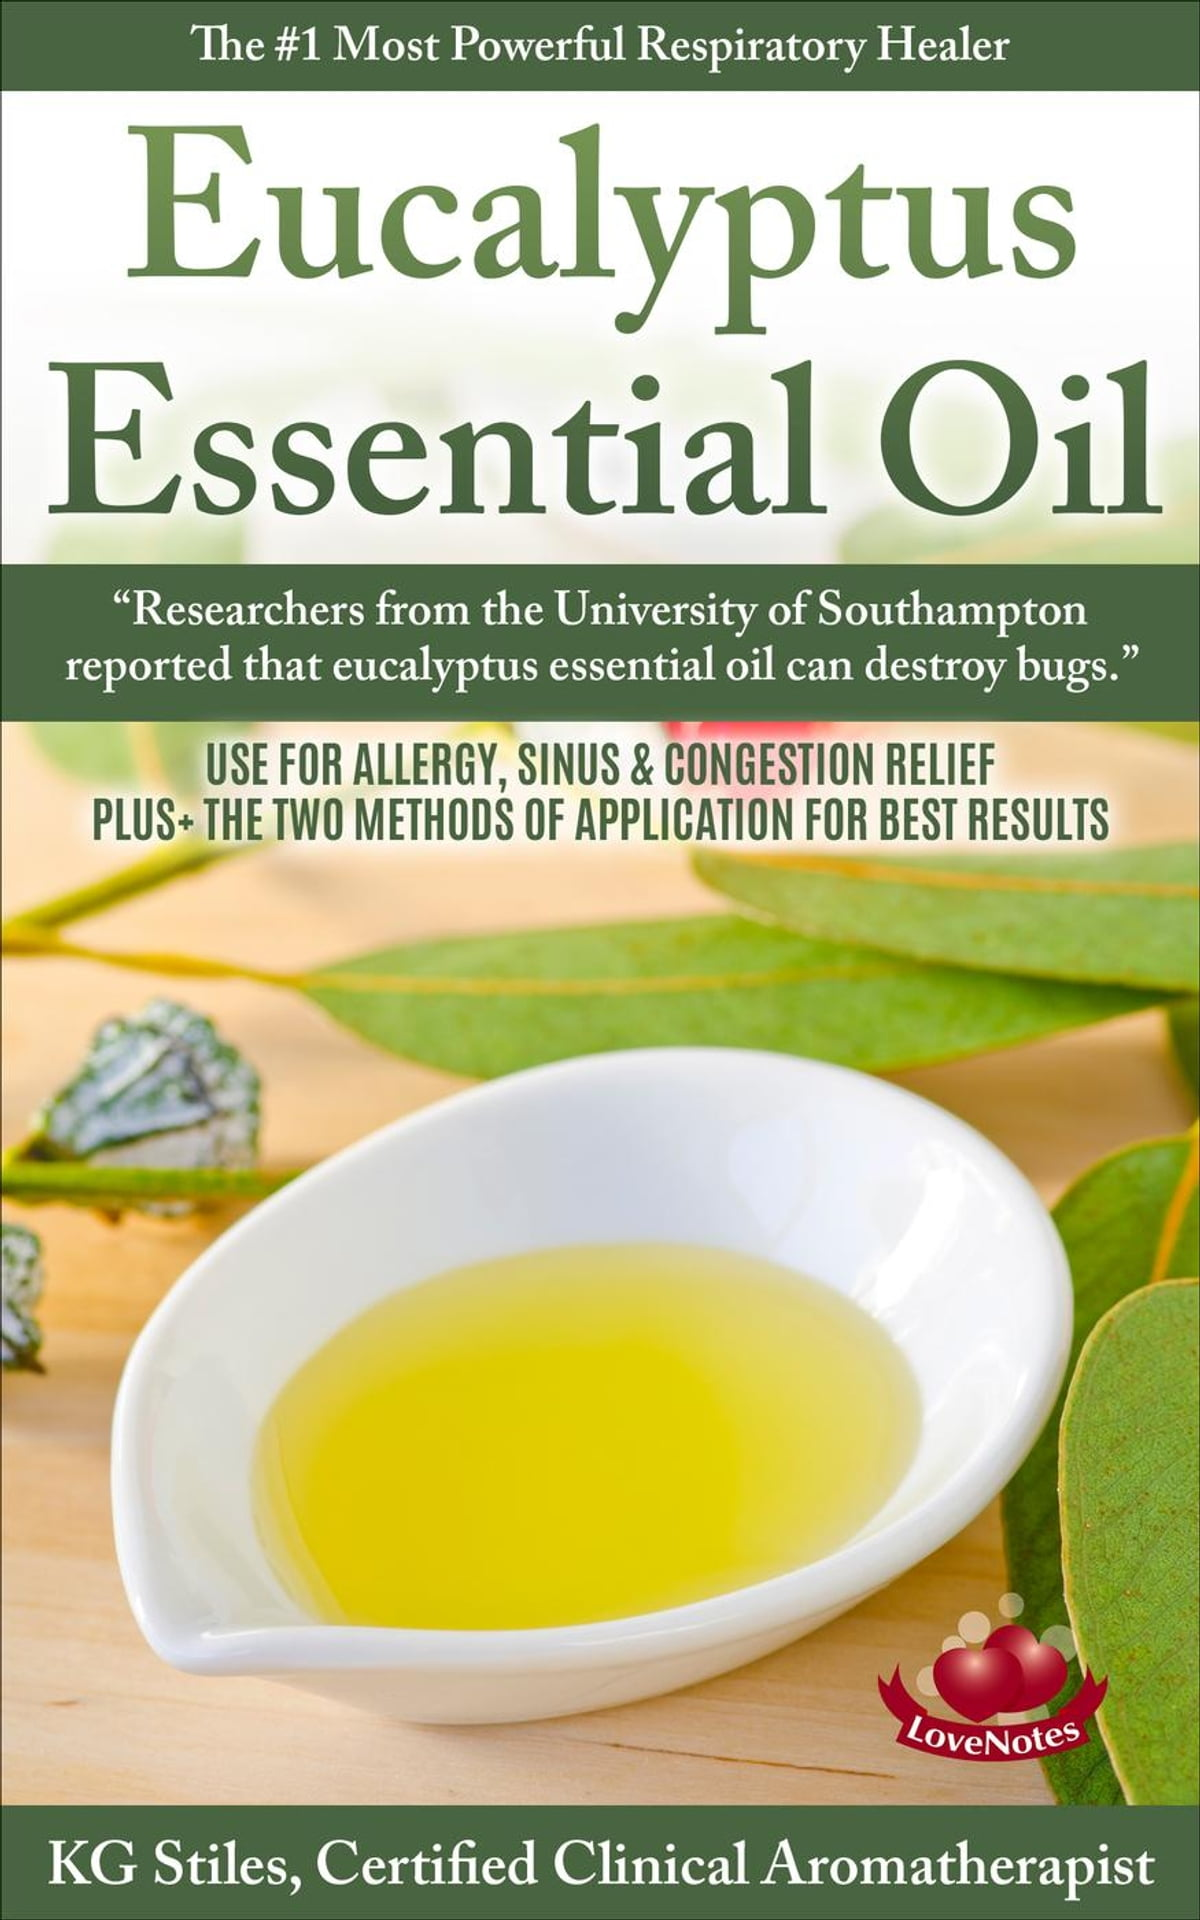 Eucalyptus Essential Oil The 1 Most Powerful Respiratory Healer Use For Allergy Sinus Congestion Relief Plus Two Methods Of Application For Best Results Ebook By Kg Stiles 9781519972934 Rakuten Kobo United States